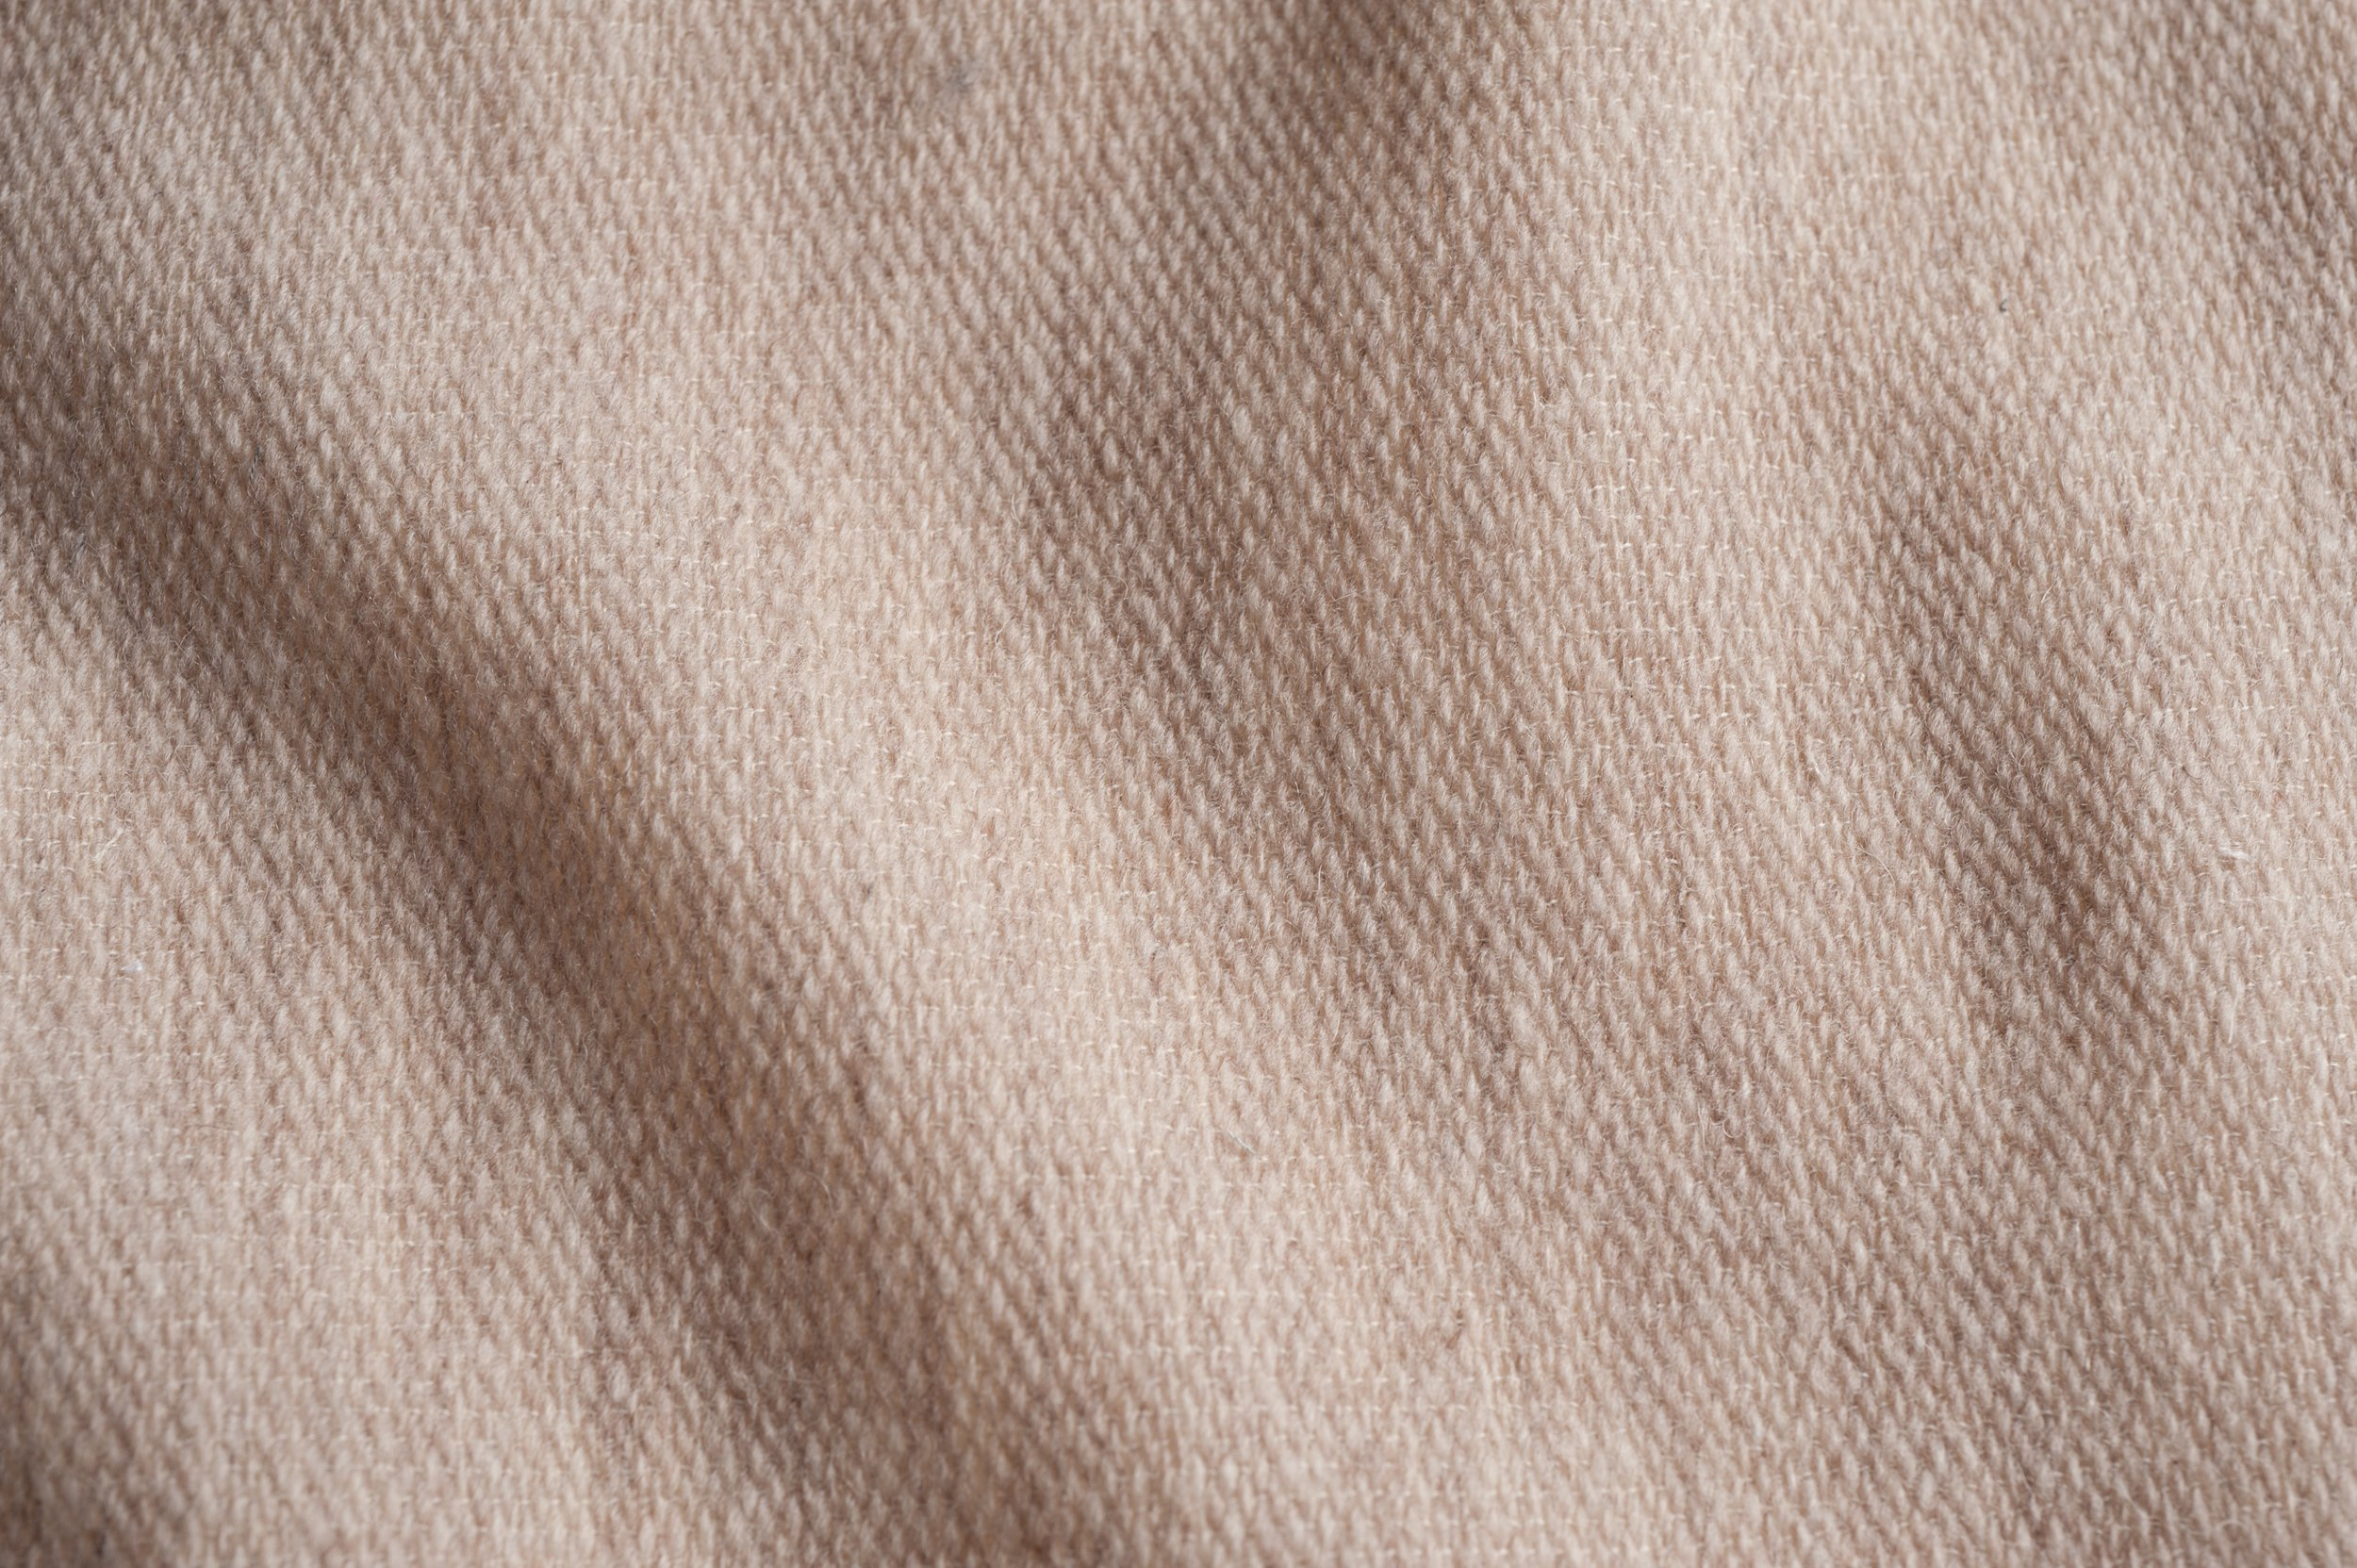 TEXTURED WOOL I PORRIDGE